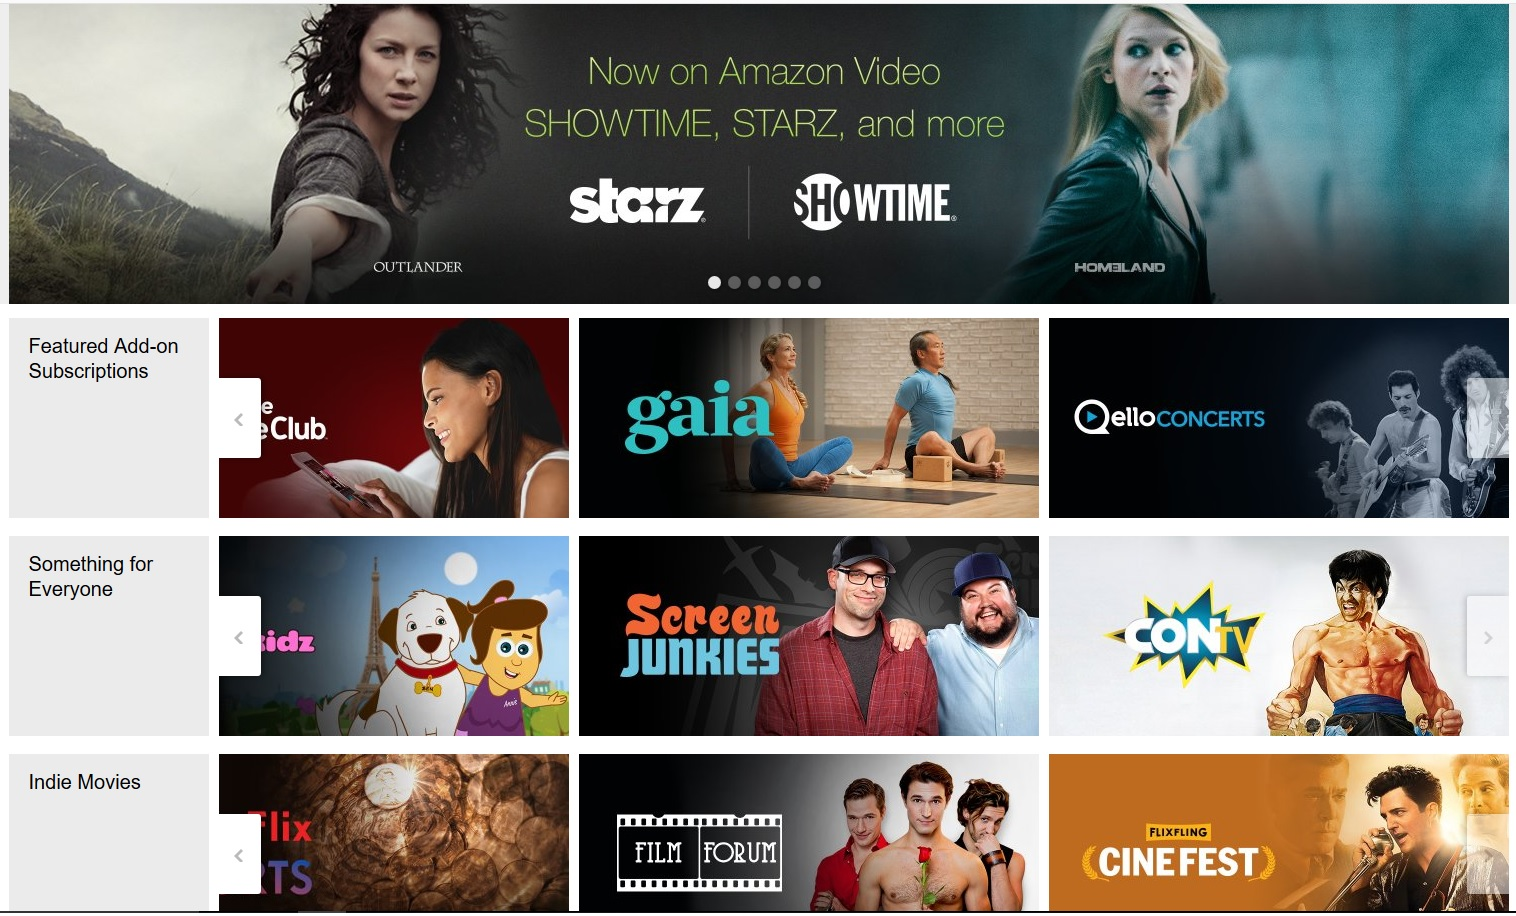 Amazon Adds 3 New Add-On Services to Prime Video - Cord ... - photo#26